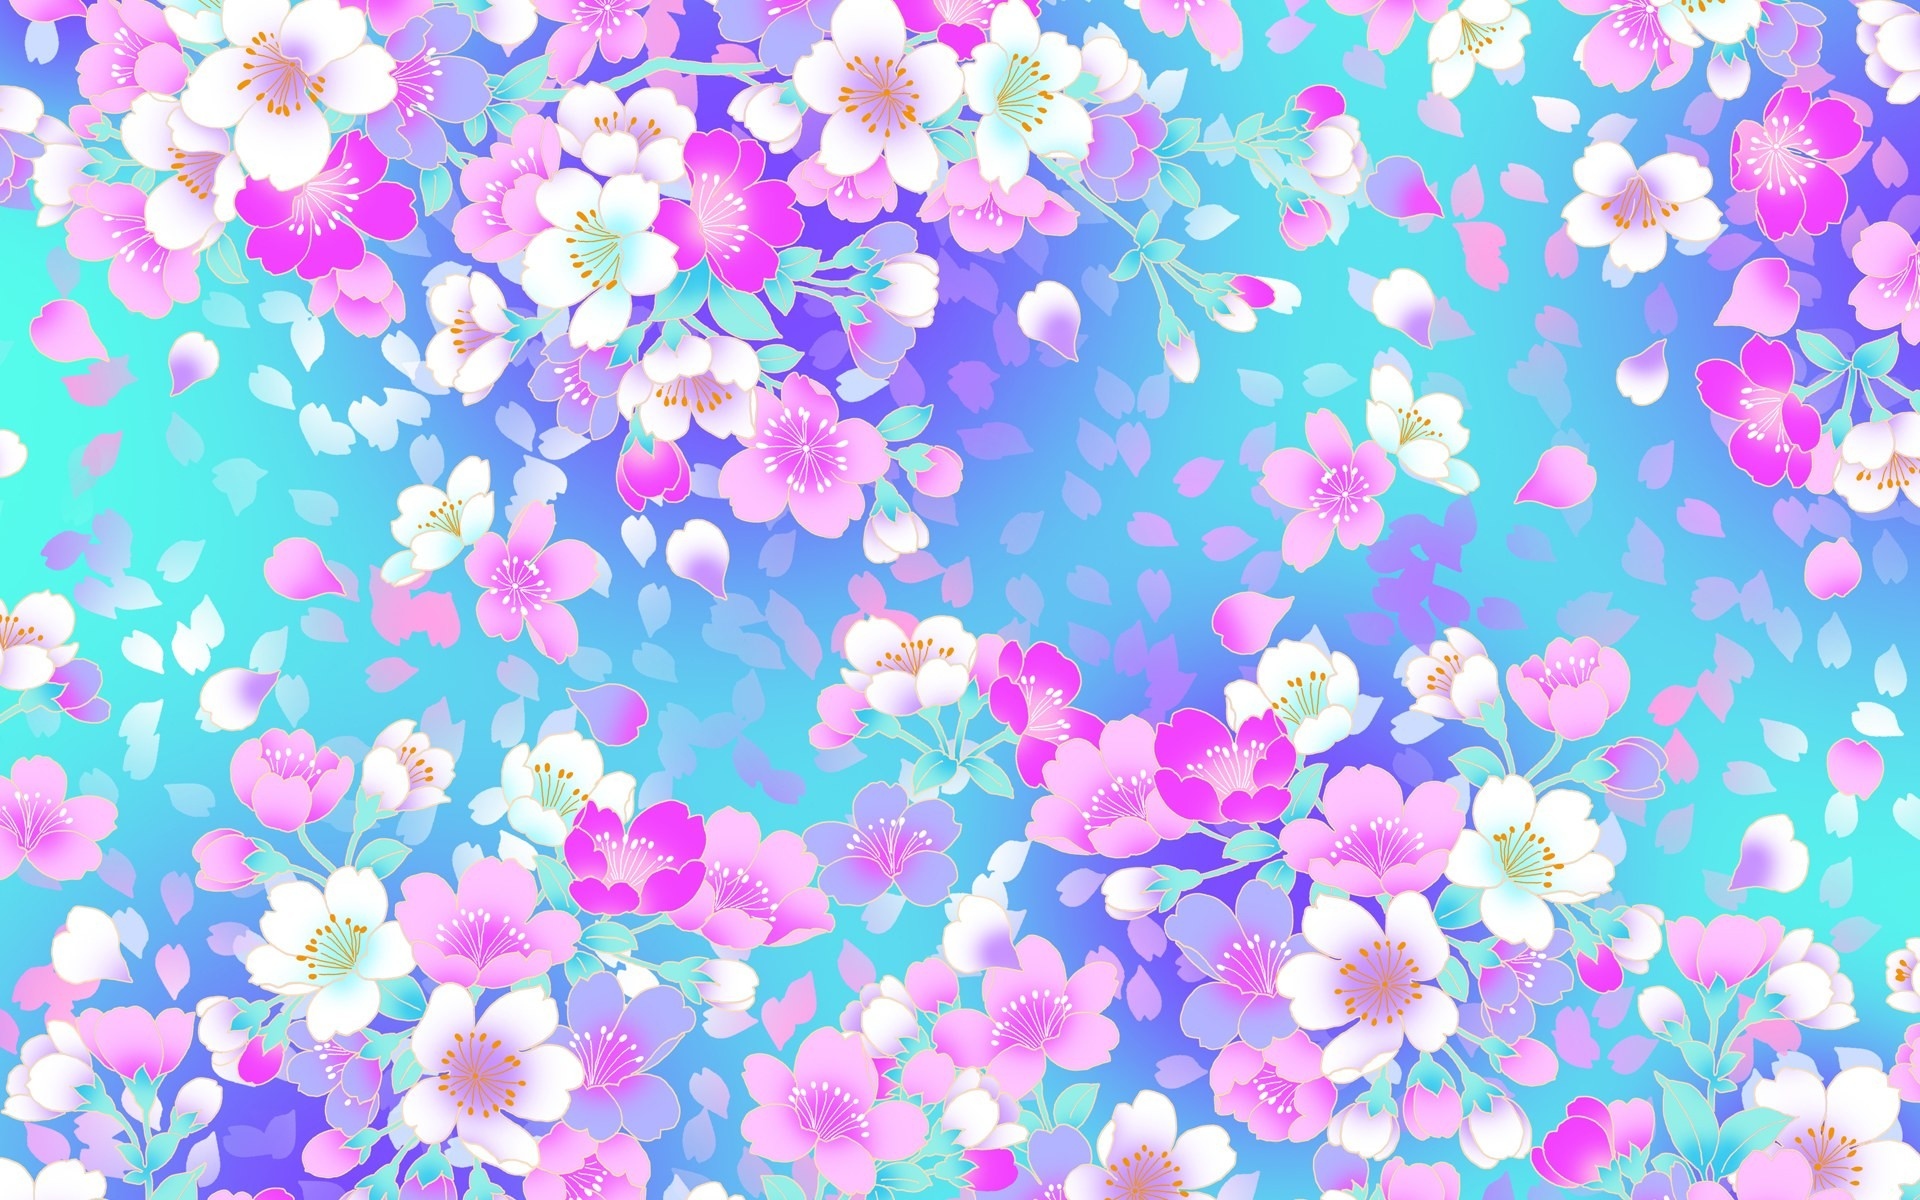 Wallpaper pink and blue flowers 33 images 1920x1200 pink flower wallpaper pattern photo5 mightylinksfo